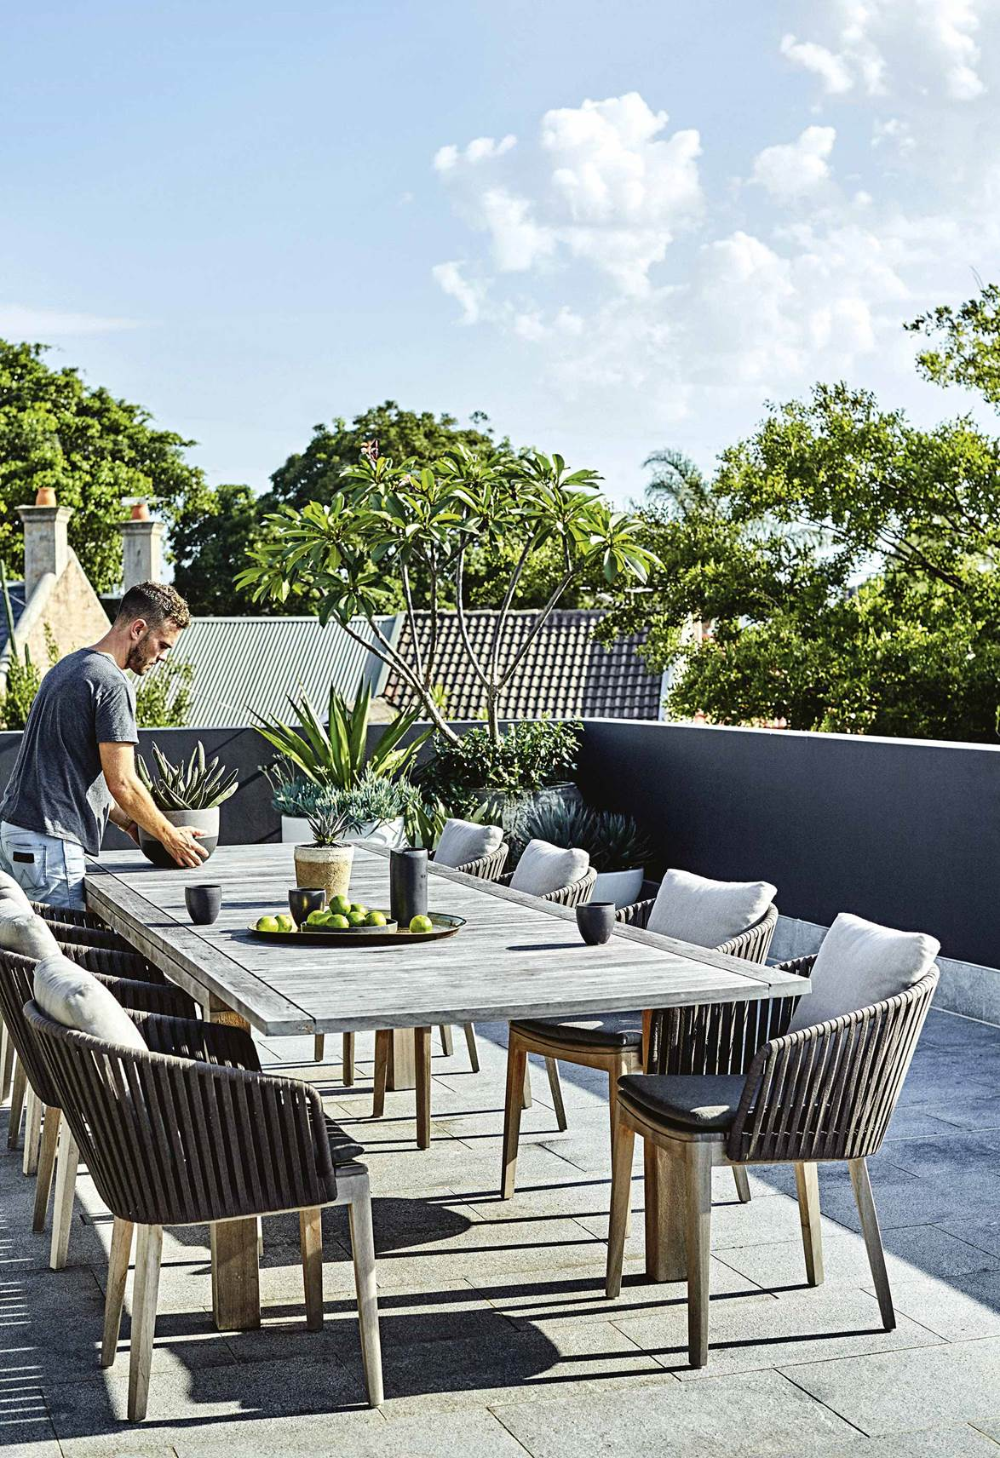 This rooftop terrace features a low-maintenance garden